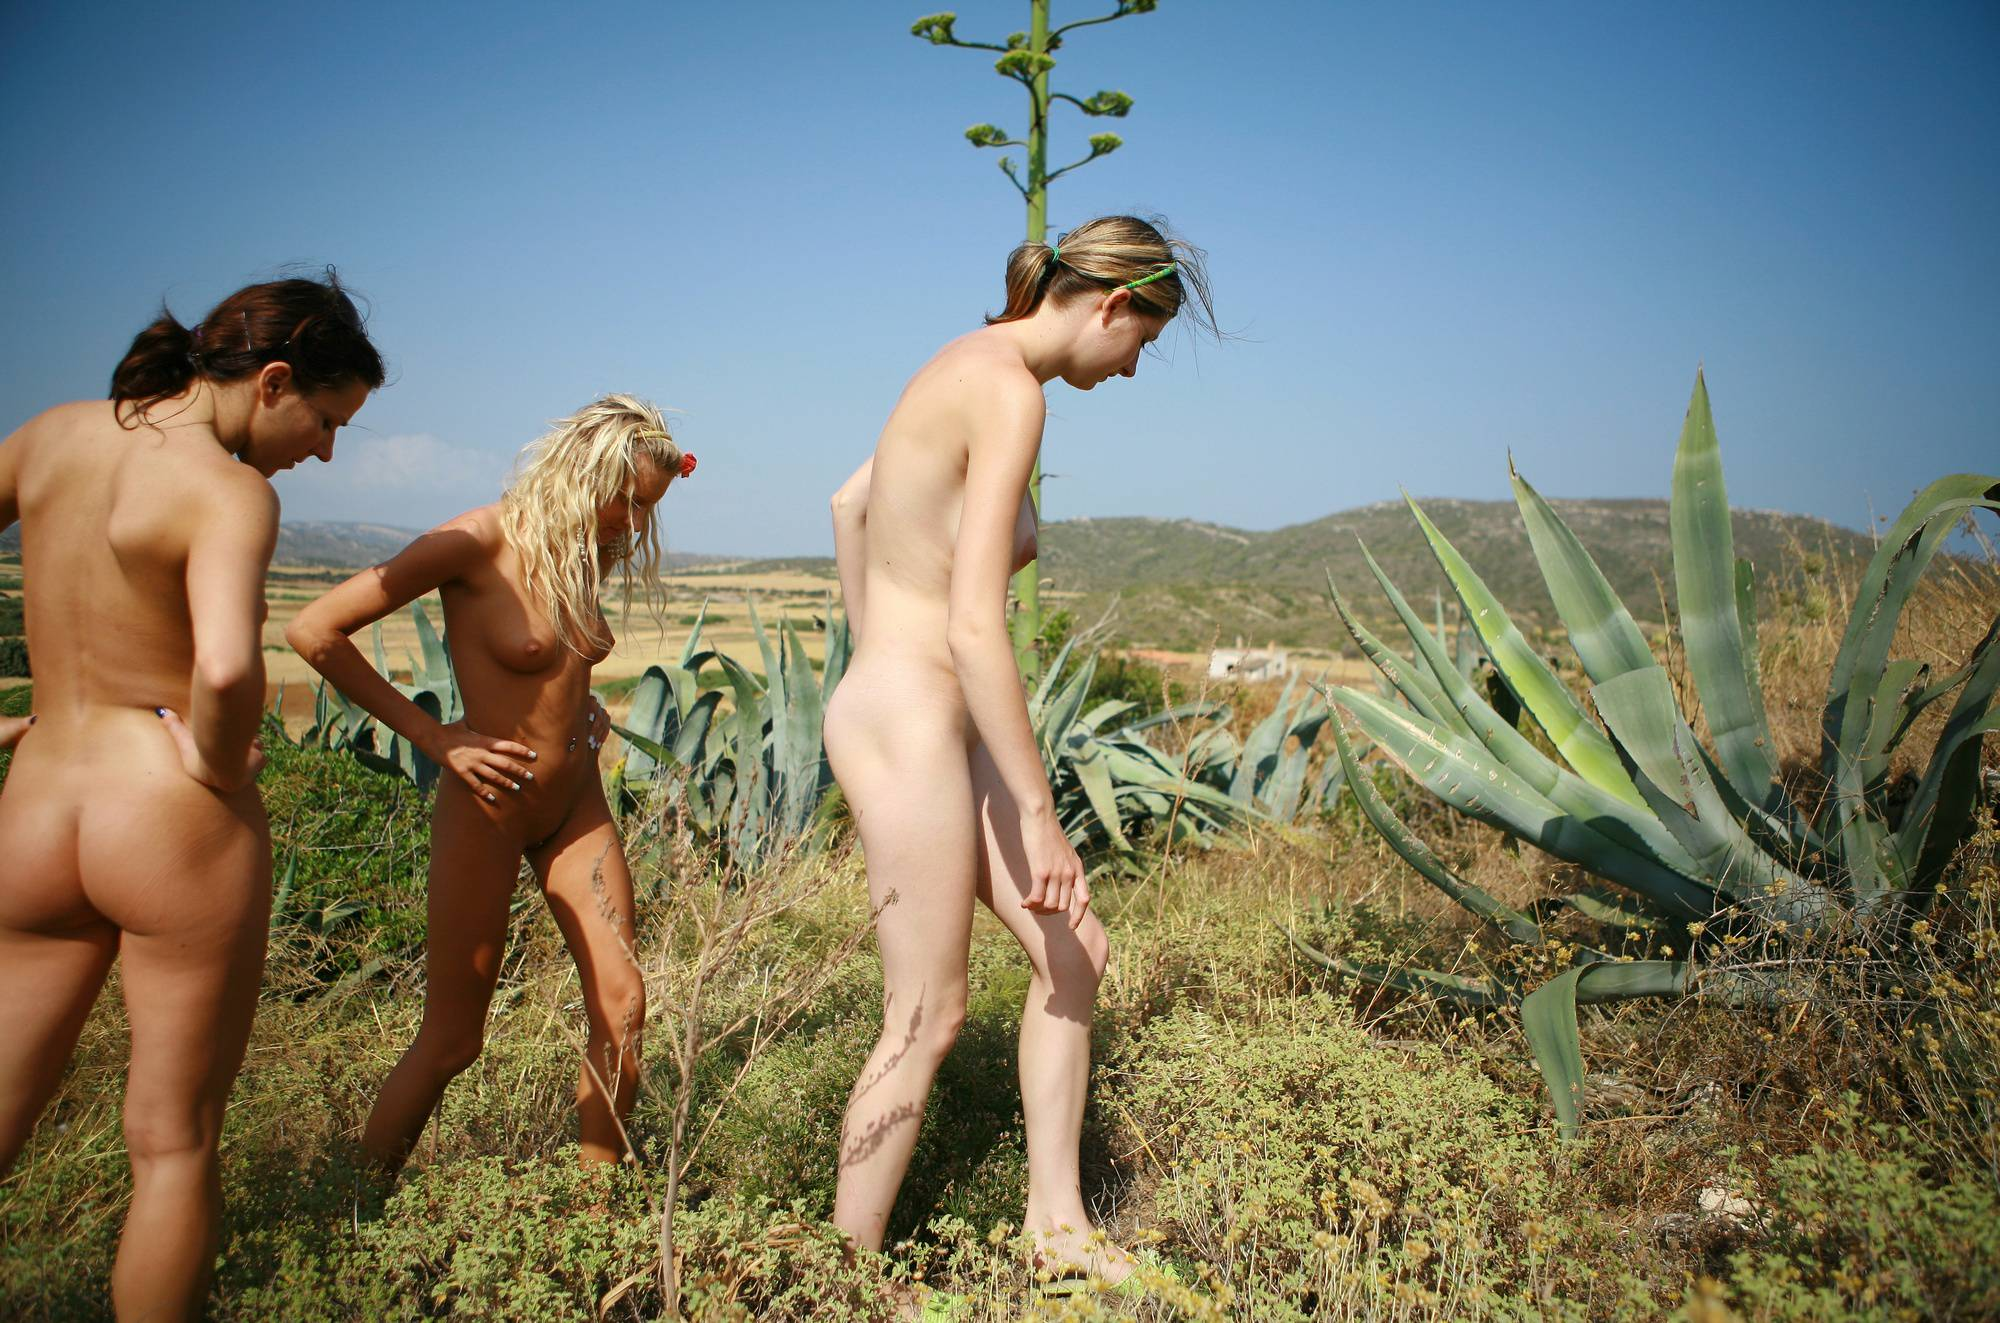 Nudist Pics Greek Cactus Plant Galore - 2